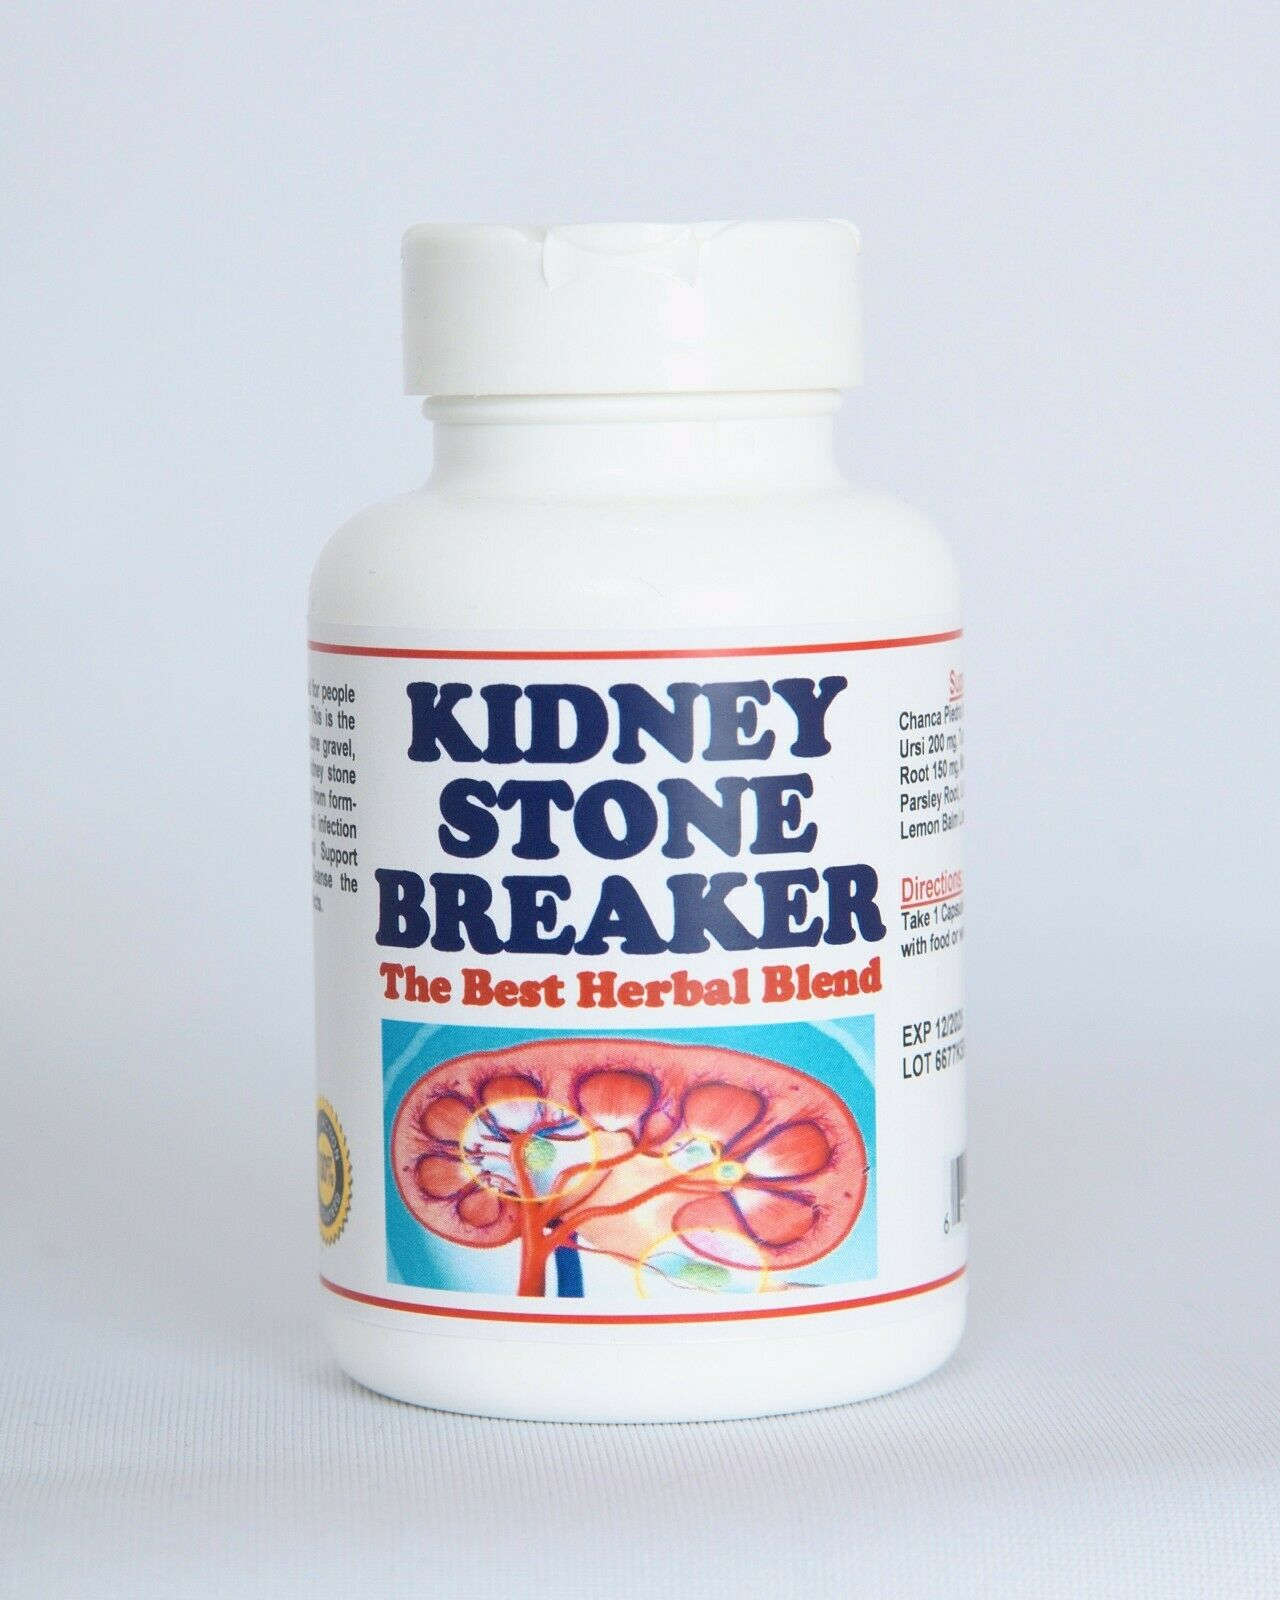 KIDNEY STONE BREAKER to Treat & Prevent